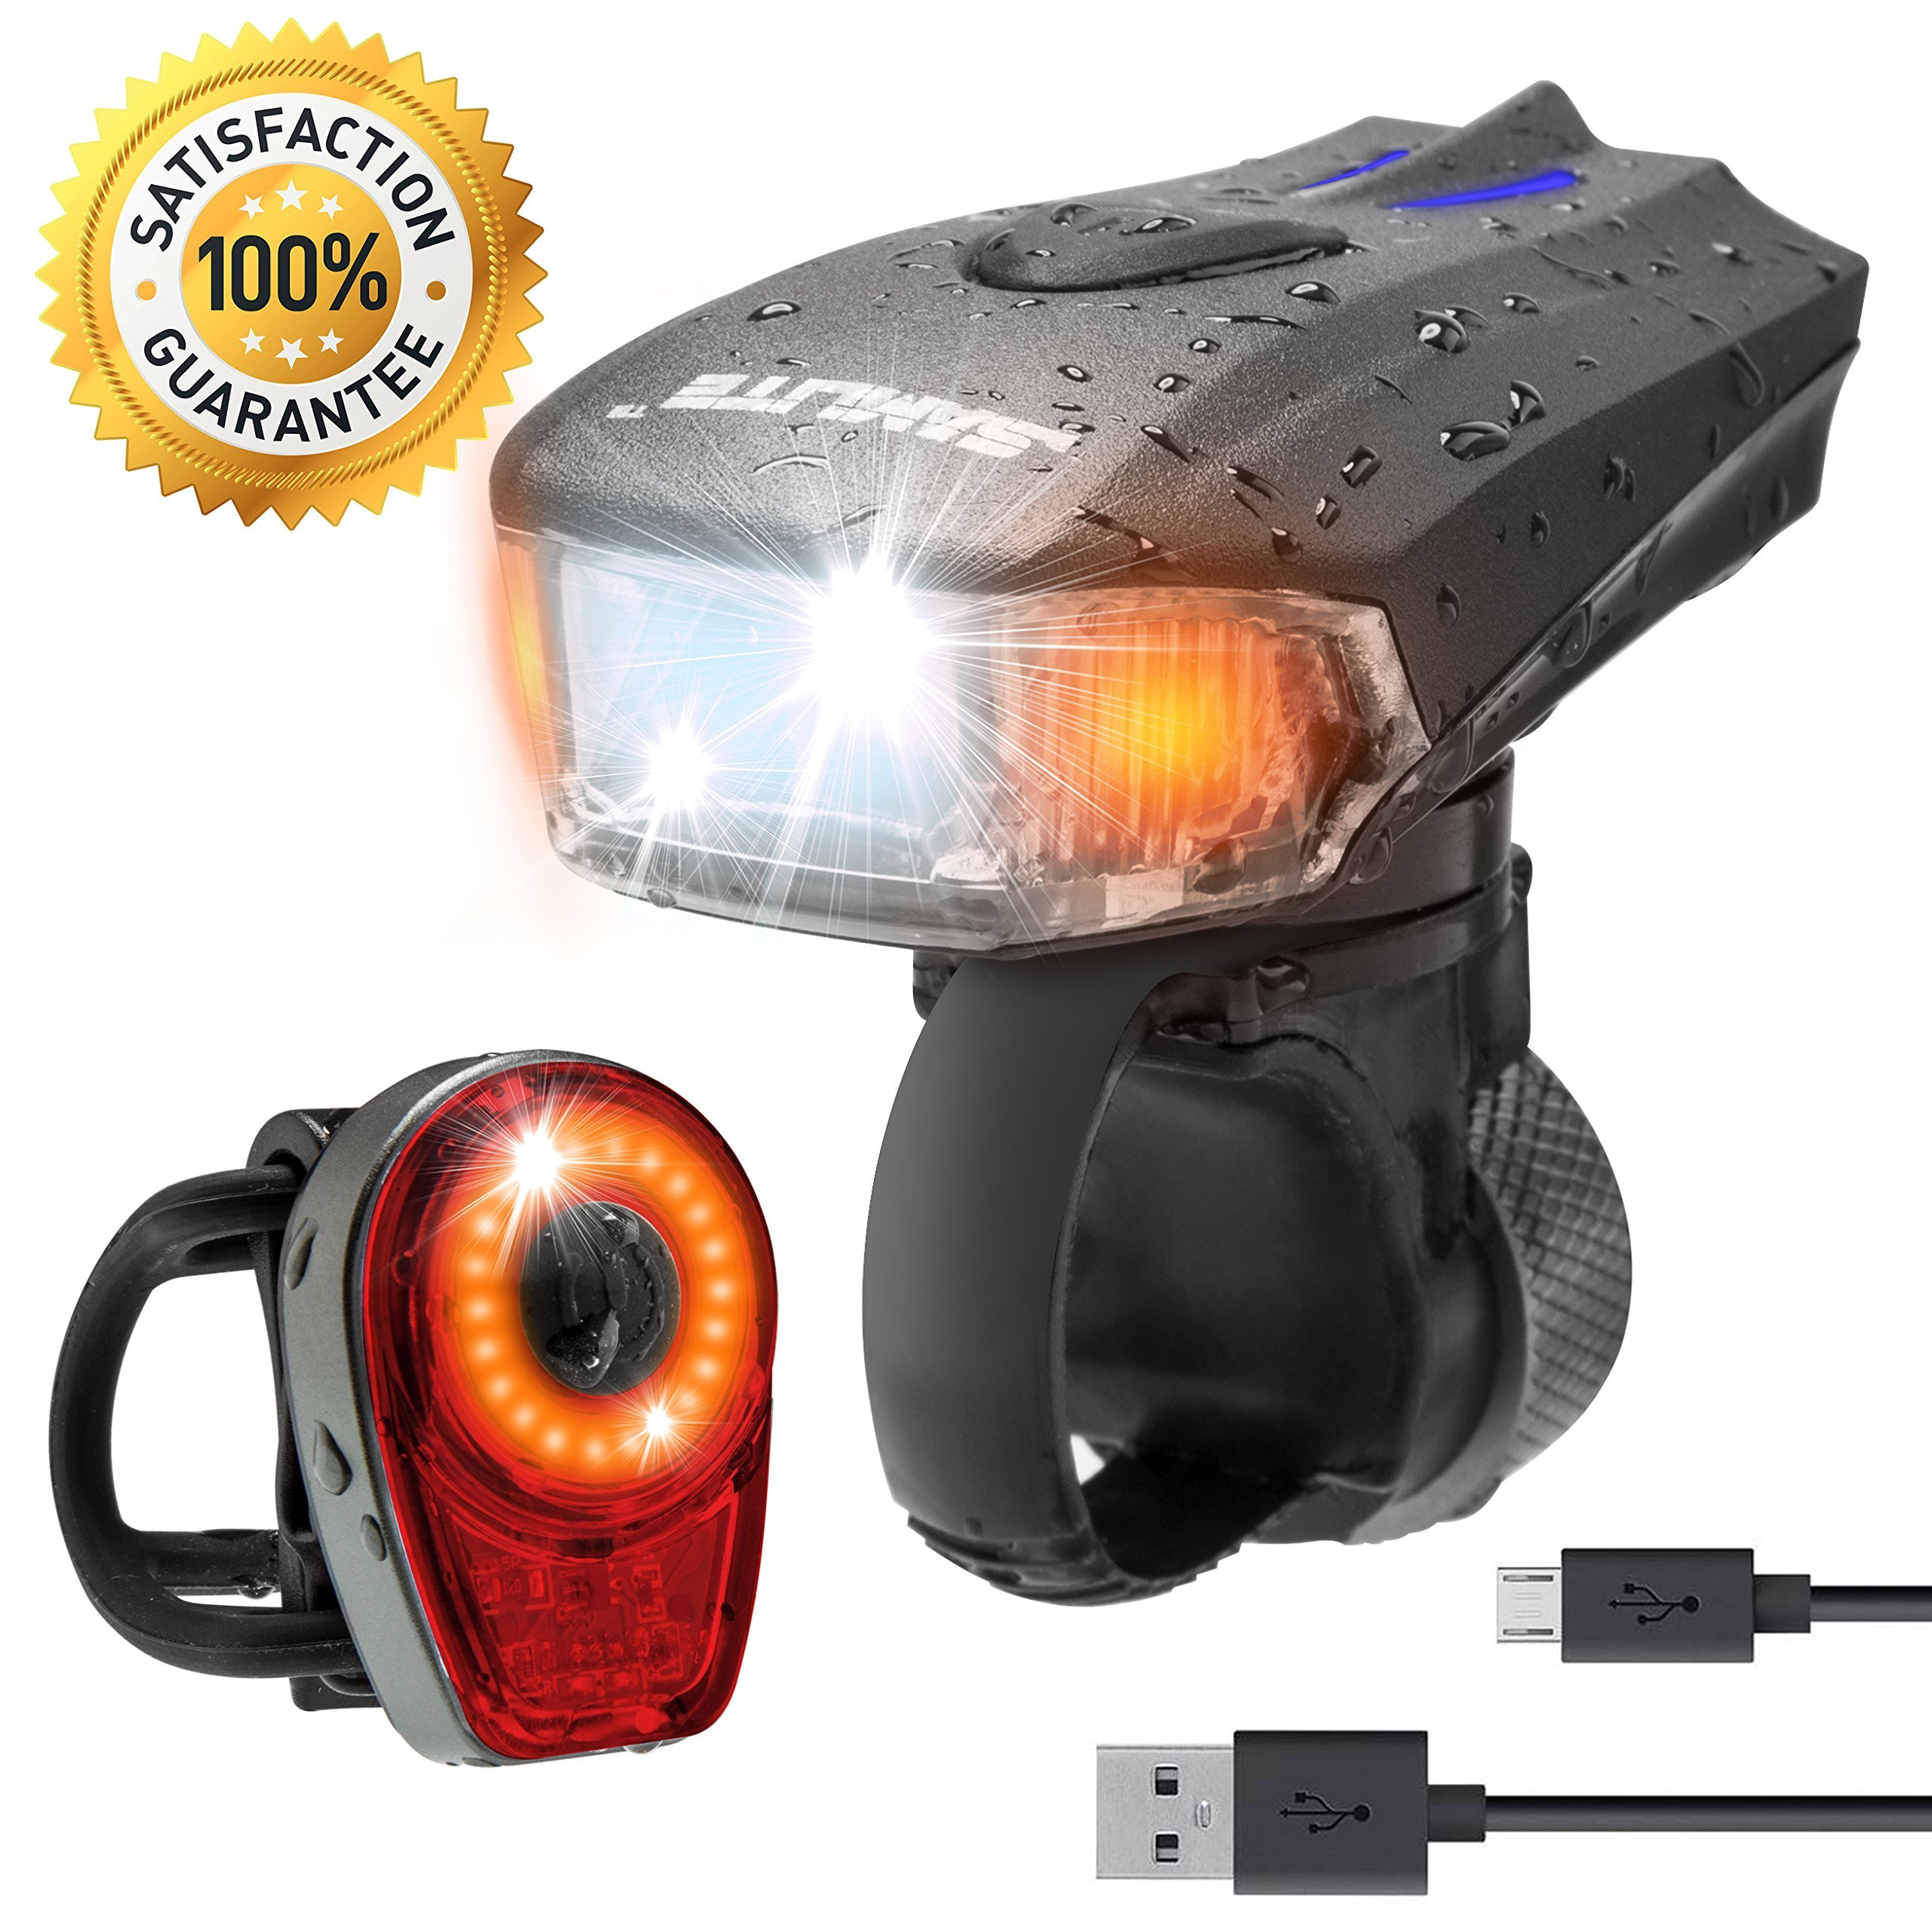 SAMLITE Best USB Rechargeable LED Bike Light Set TRIP-LIT SUPER BRIGHT 400 Lumens Headlight - LED Front Light with FREE LED Tail Light Set, Two USB Charging Cables Included for Safety Cycling